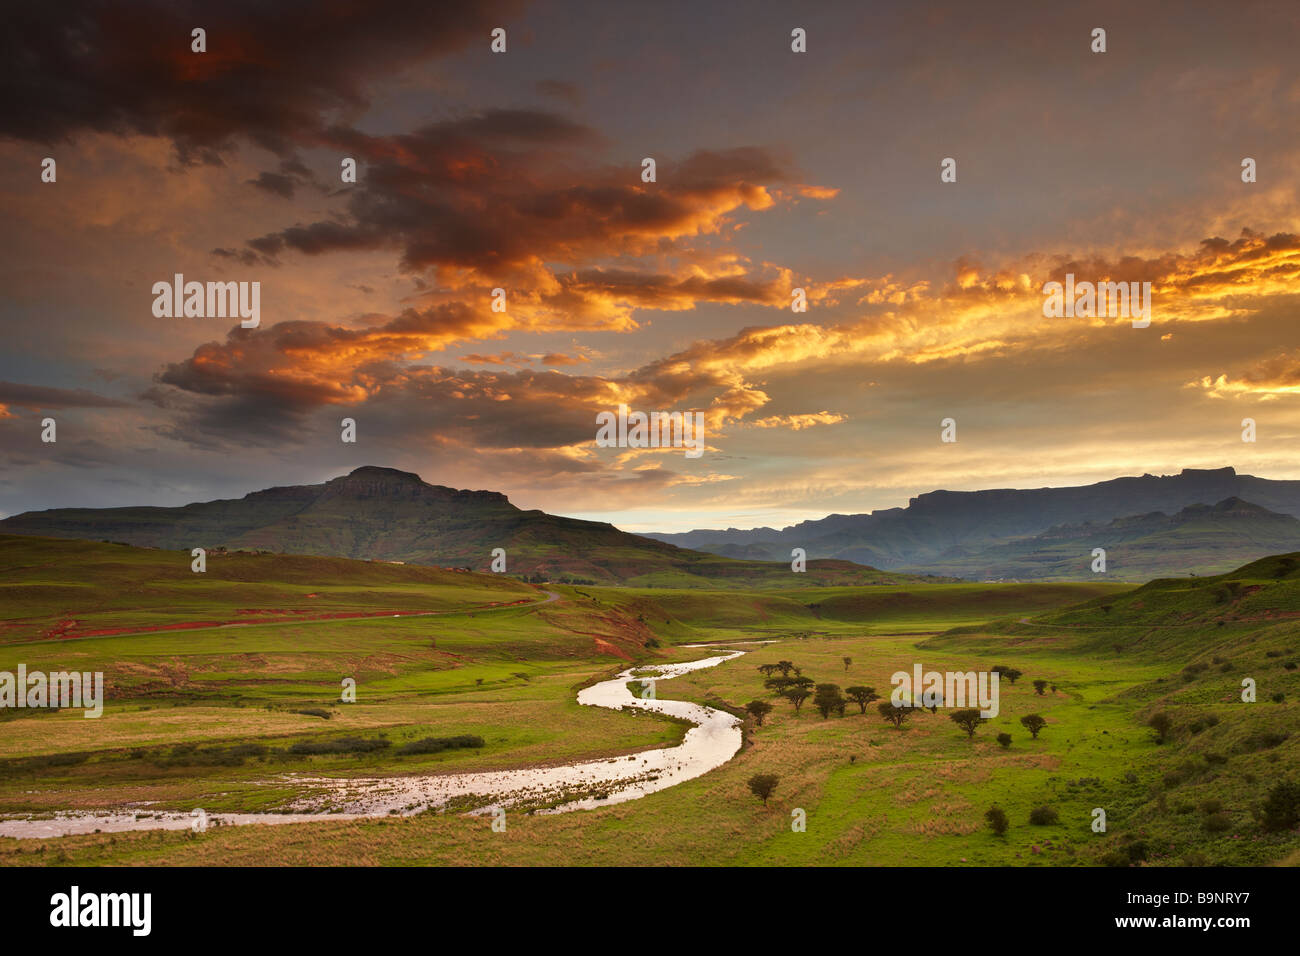 dusk sky over the Tugela Valley with the Drakensberg Mountains beyond, KwaZulu Natal, South Africa Stock Photo